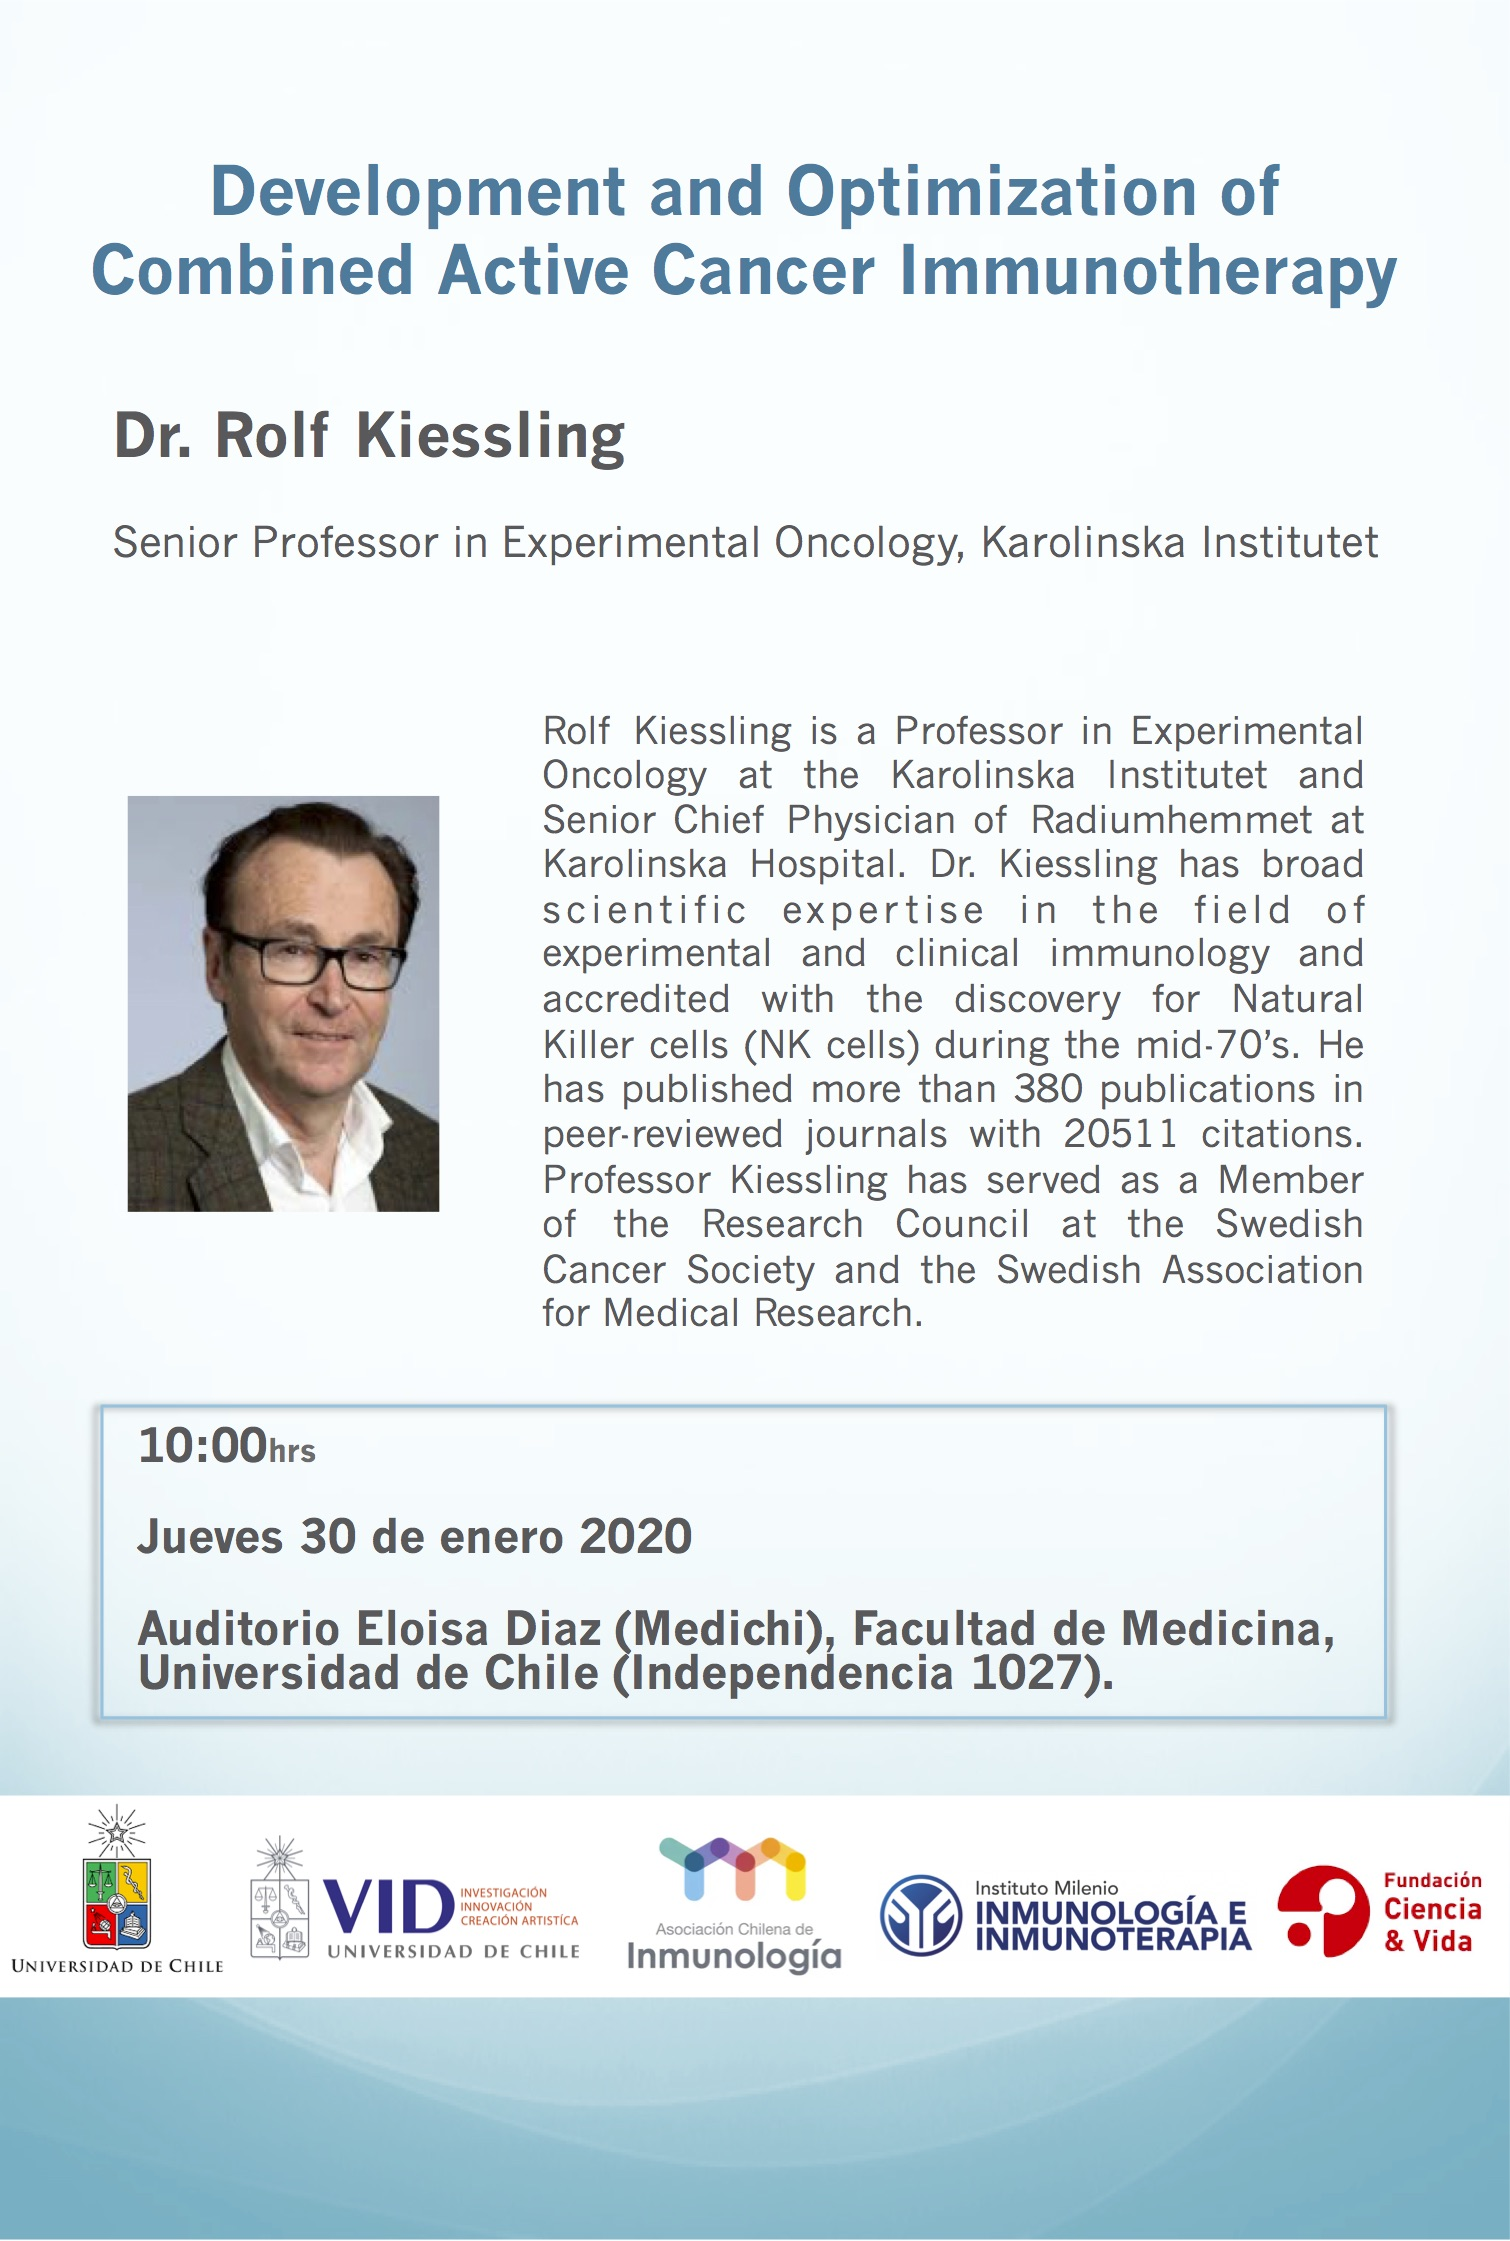 Seminario Dr. Rolf Kiessling: Development and Optimization of Combined Active Cancer Immunotherapy graphic